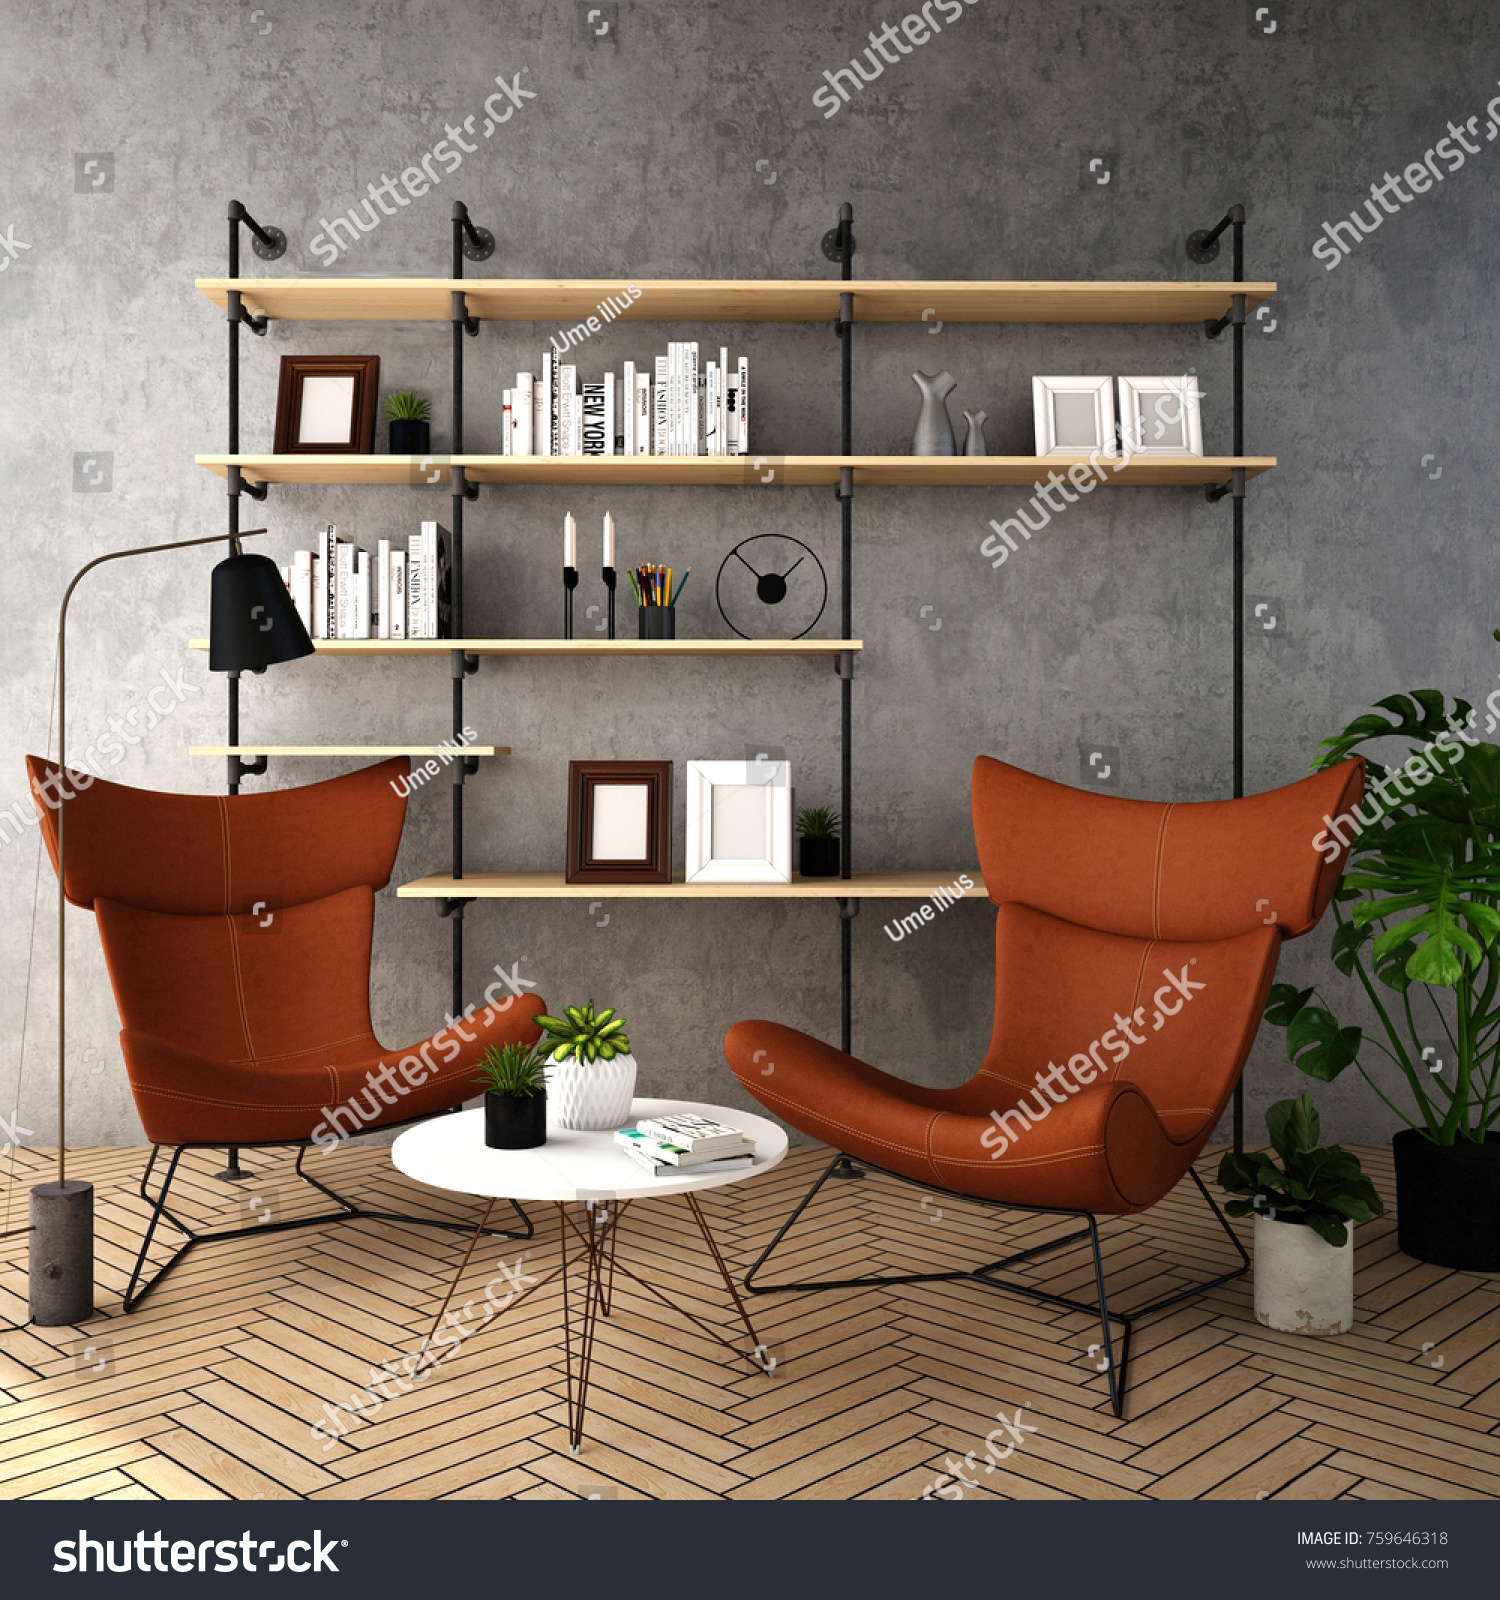 Interior design for living area in modern style with plant armchair table and many props on wood floor and gray wall 3d rendering 3d illustration